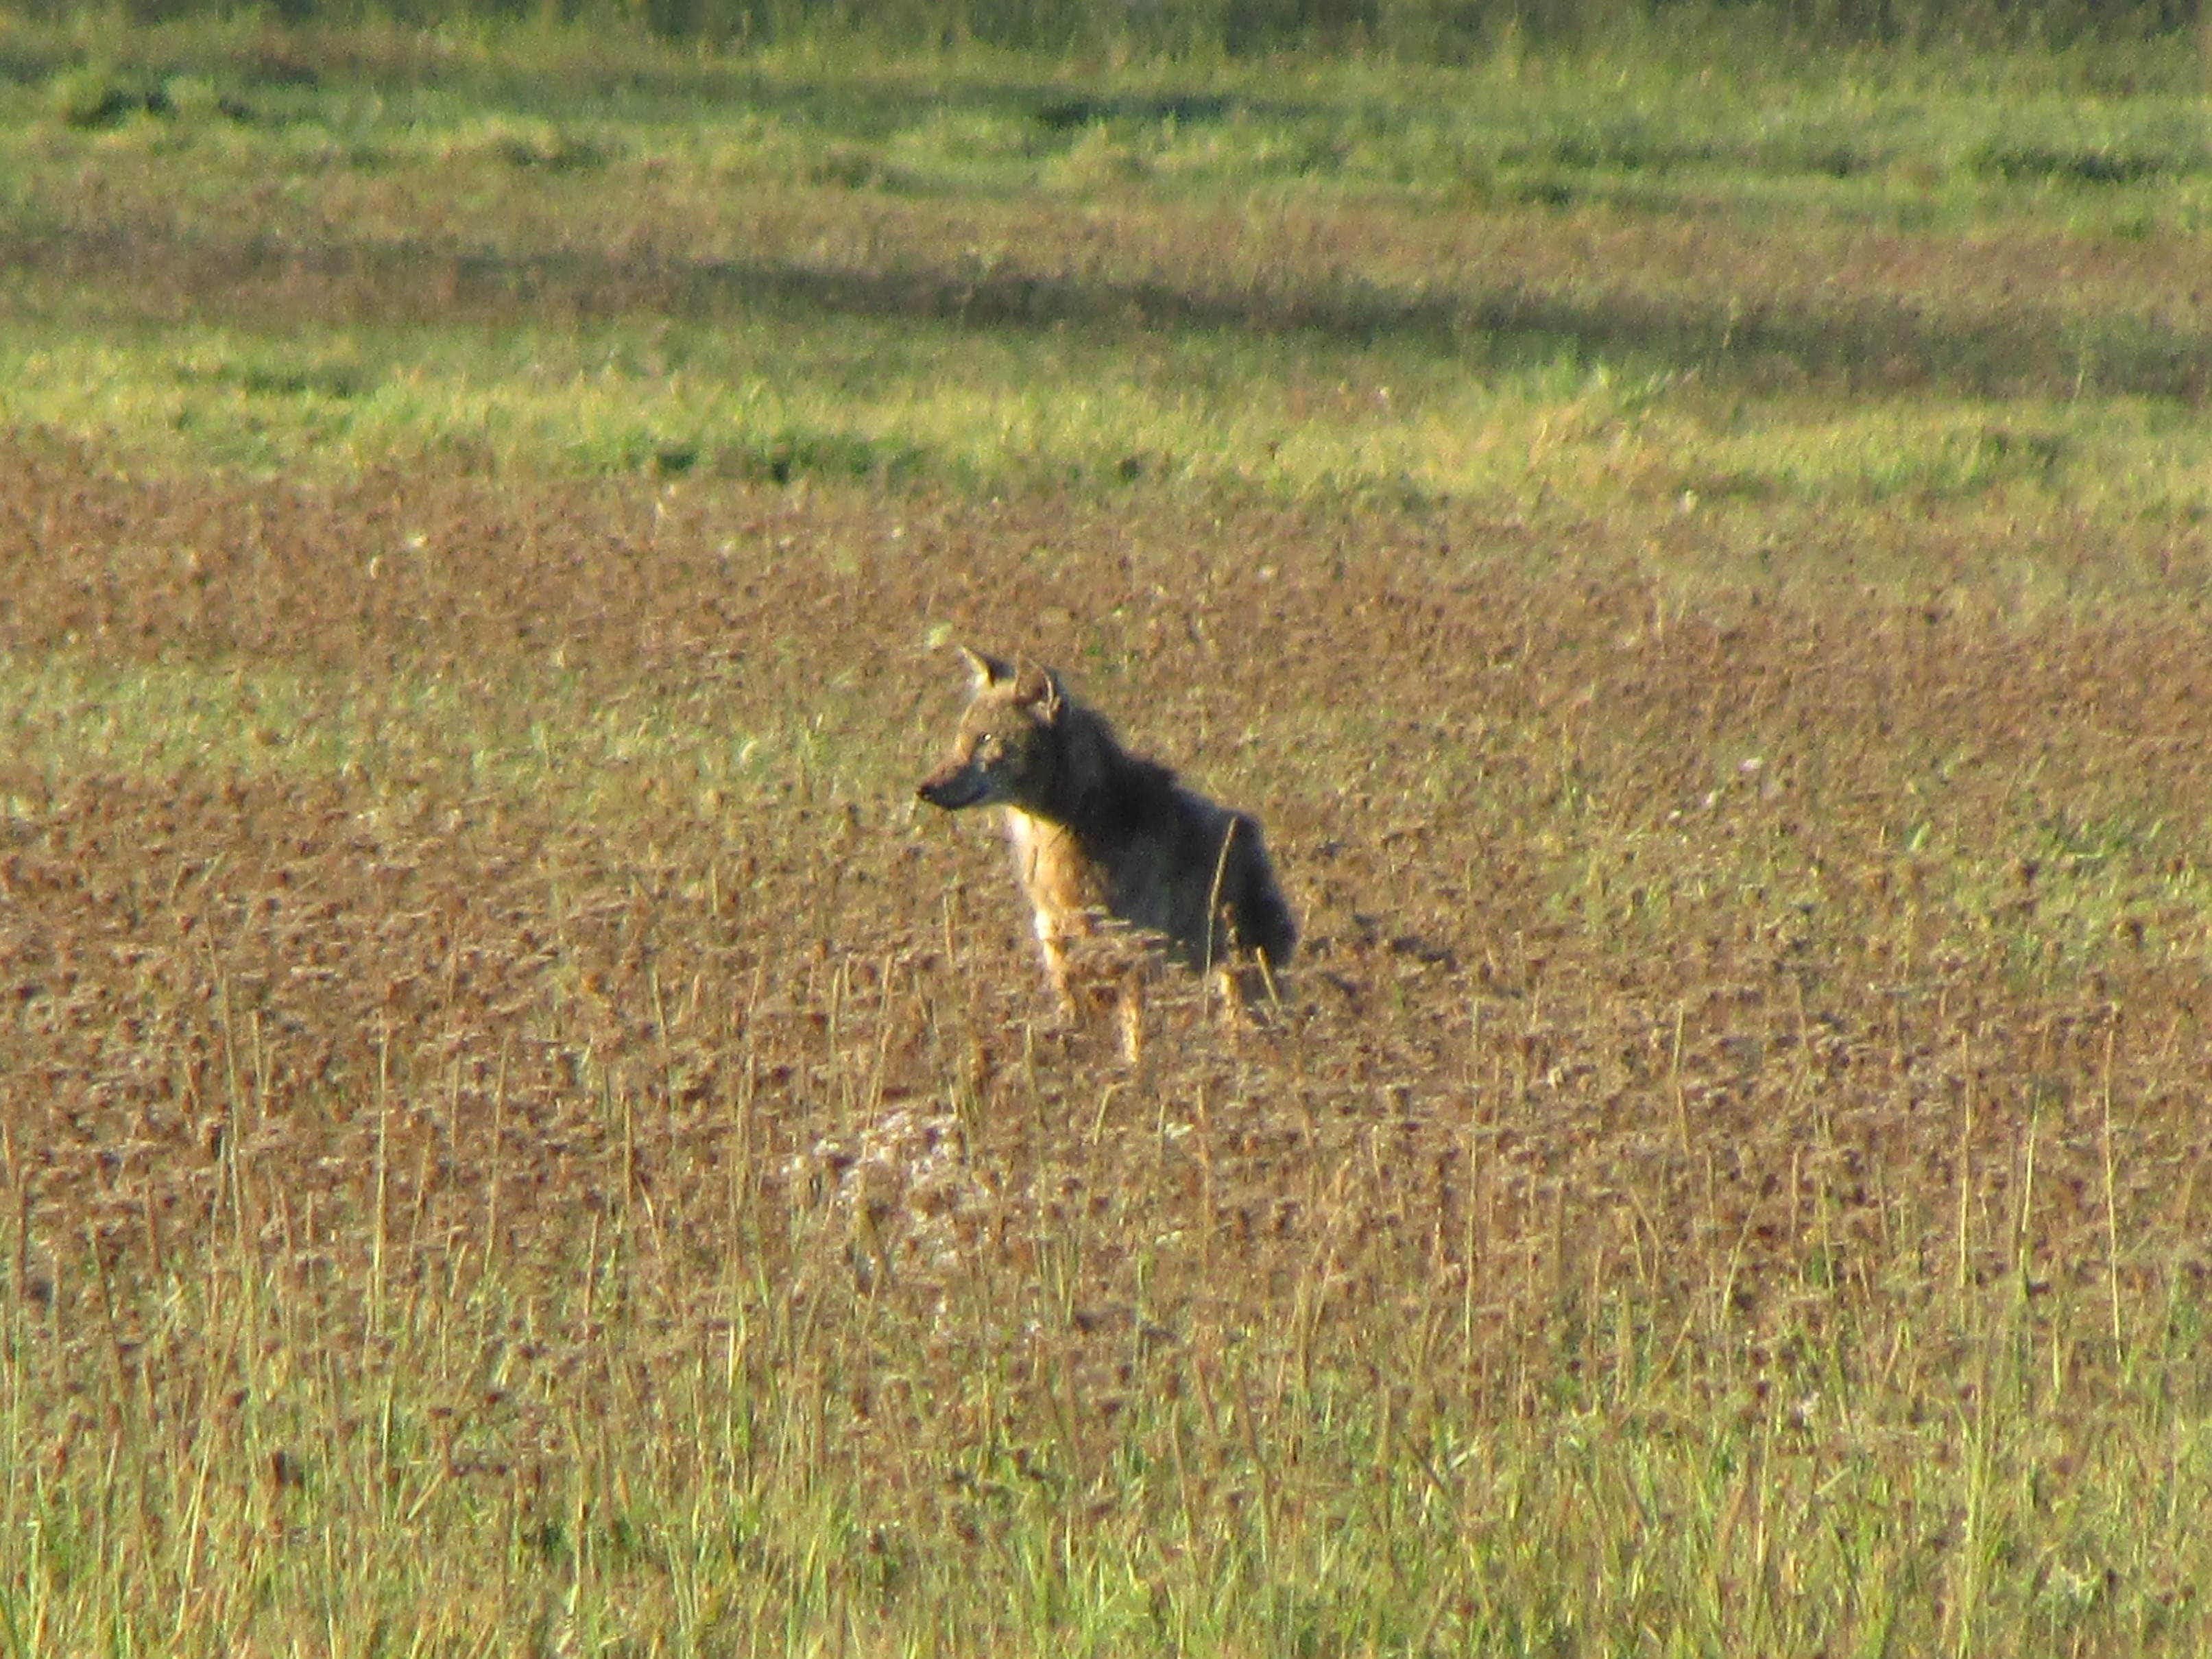 Grand Island has spent months discussing how to handle coyotes on the island. (David Reilly)